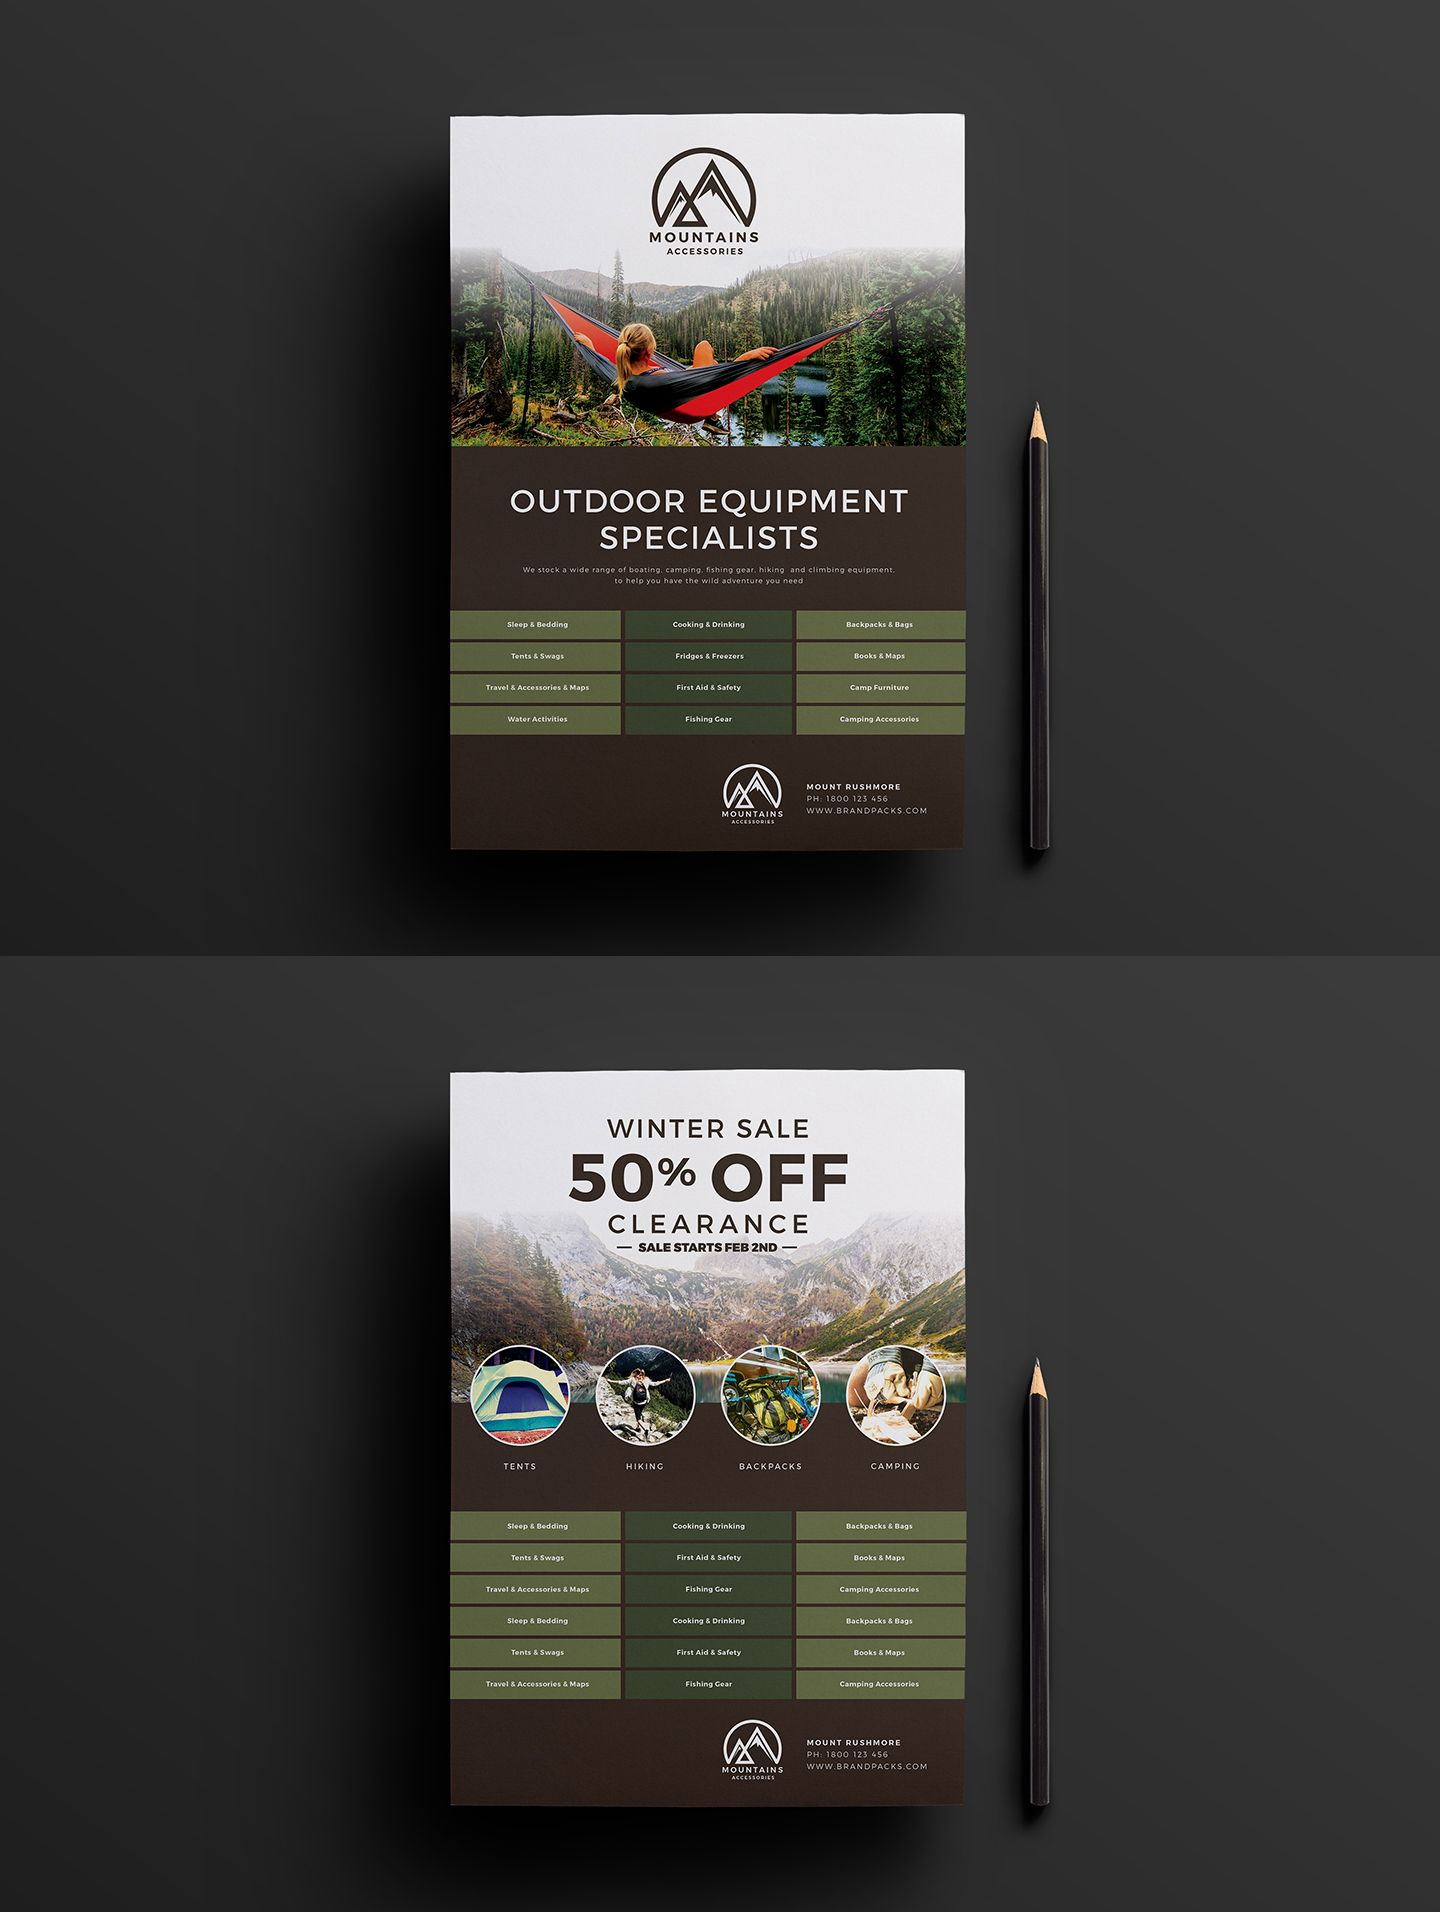 Free Camping Poster Template For Photoshop Illustrator Brandpacks Poster Template Photoshop Illustrator Free Camping